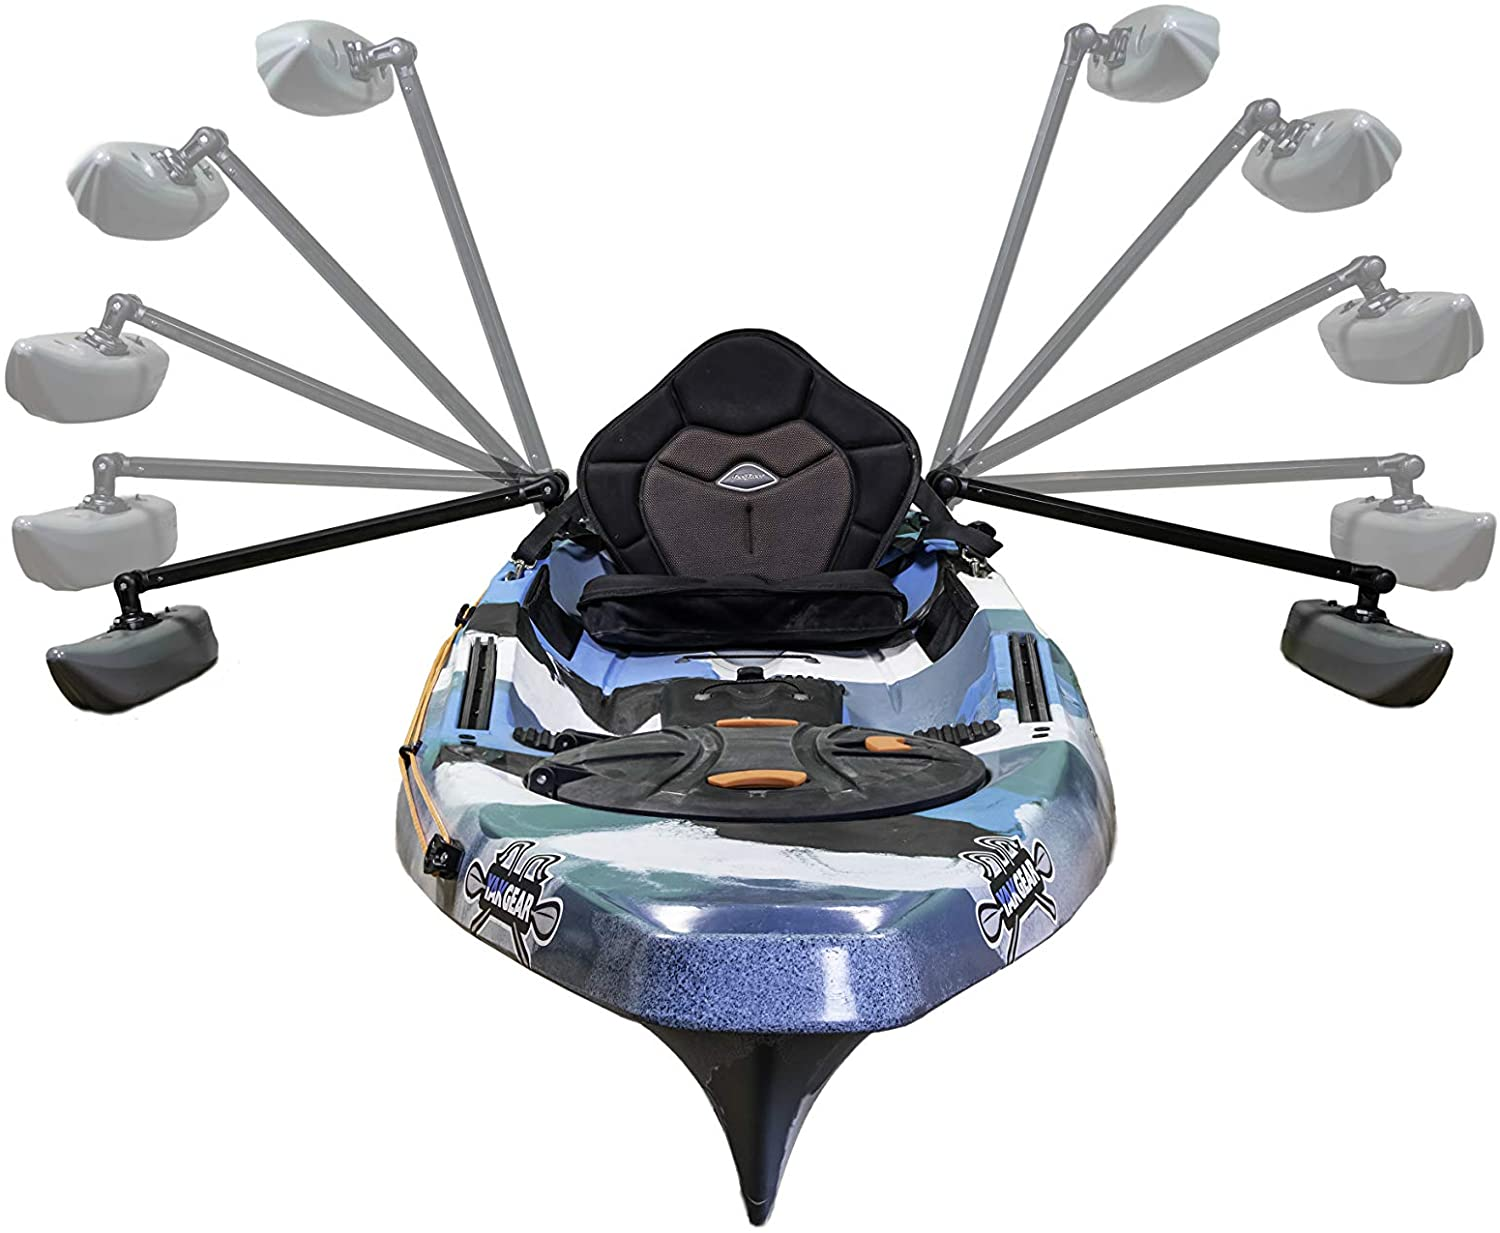 Stabilizers are shown that can be used on a canoe, kayak, or paddle board for increased stability.